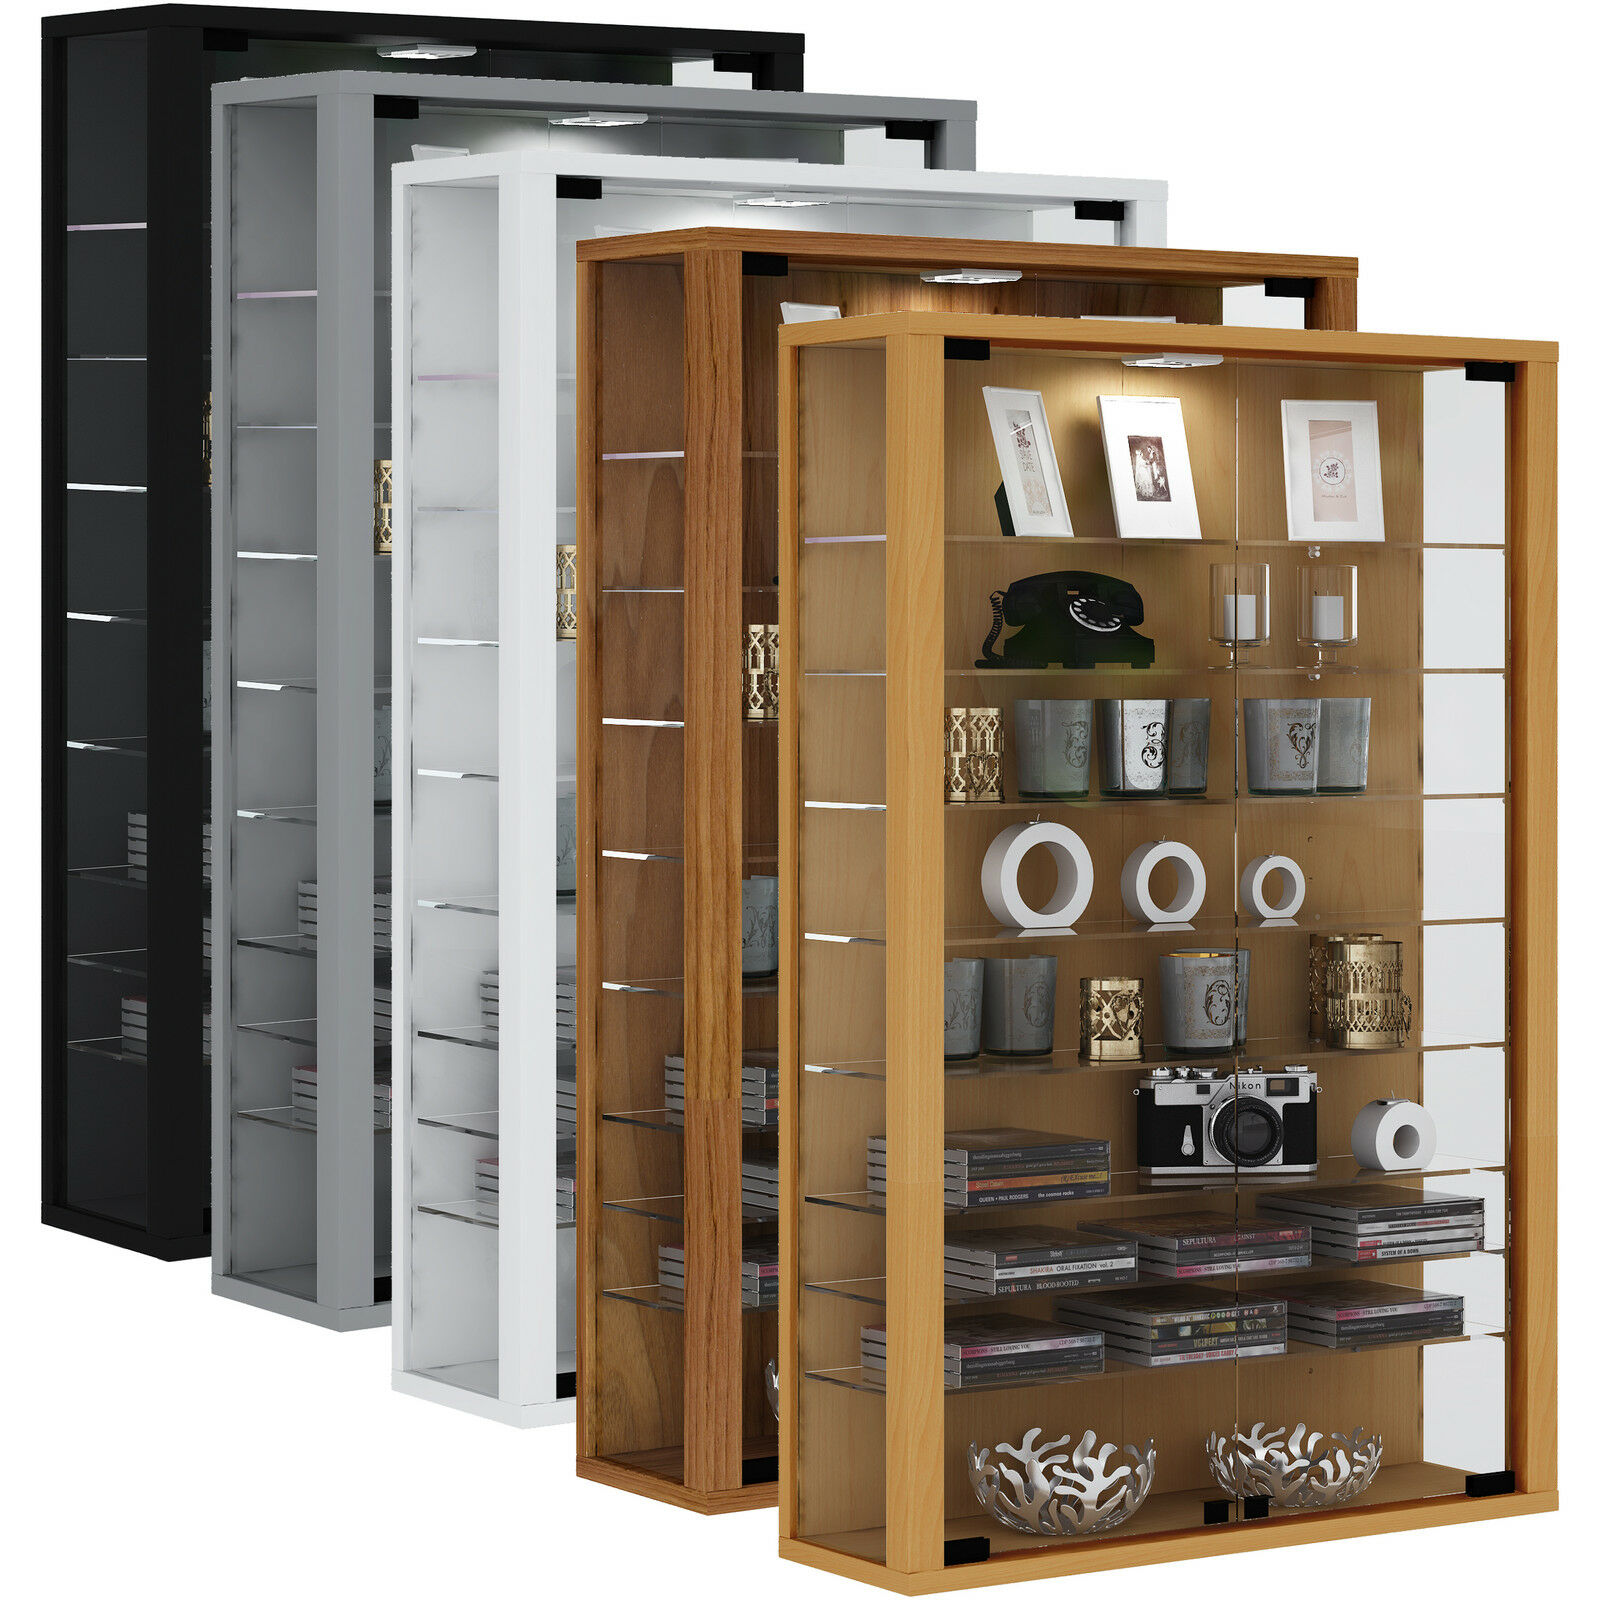 vcm wandvitrine sammelvitrine glasvitrine wand vitrine regal schrank glas eur 129 00 picclick de. Black Bedroom Furniture Sets. Home Design Ideas